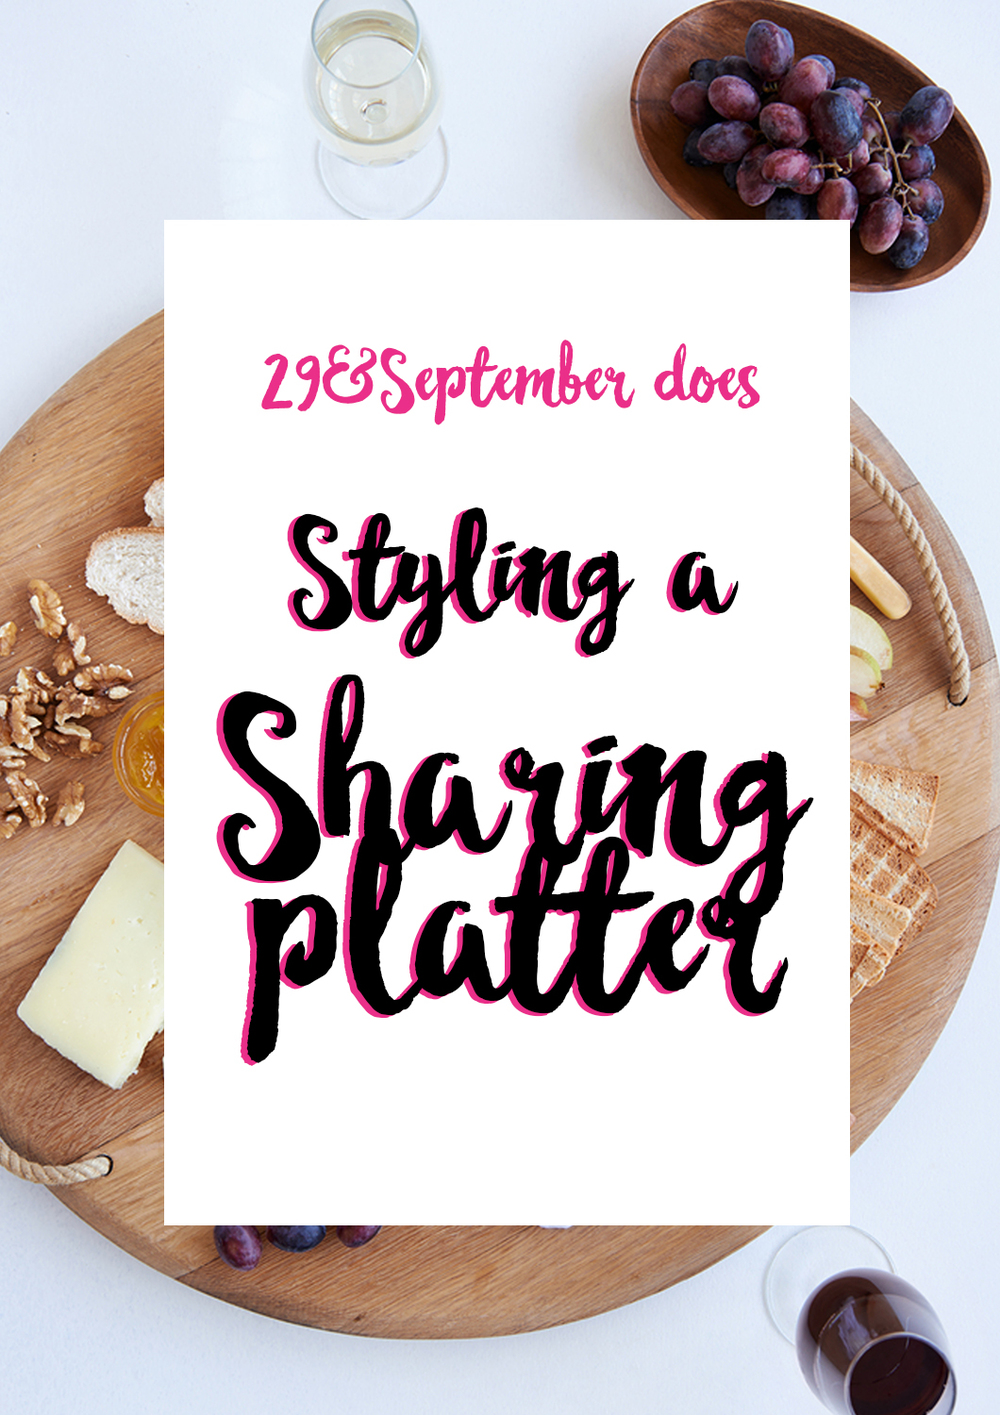 How to make a delicious sharing platter